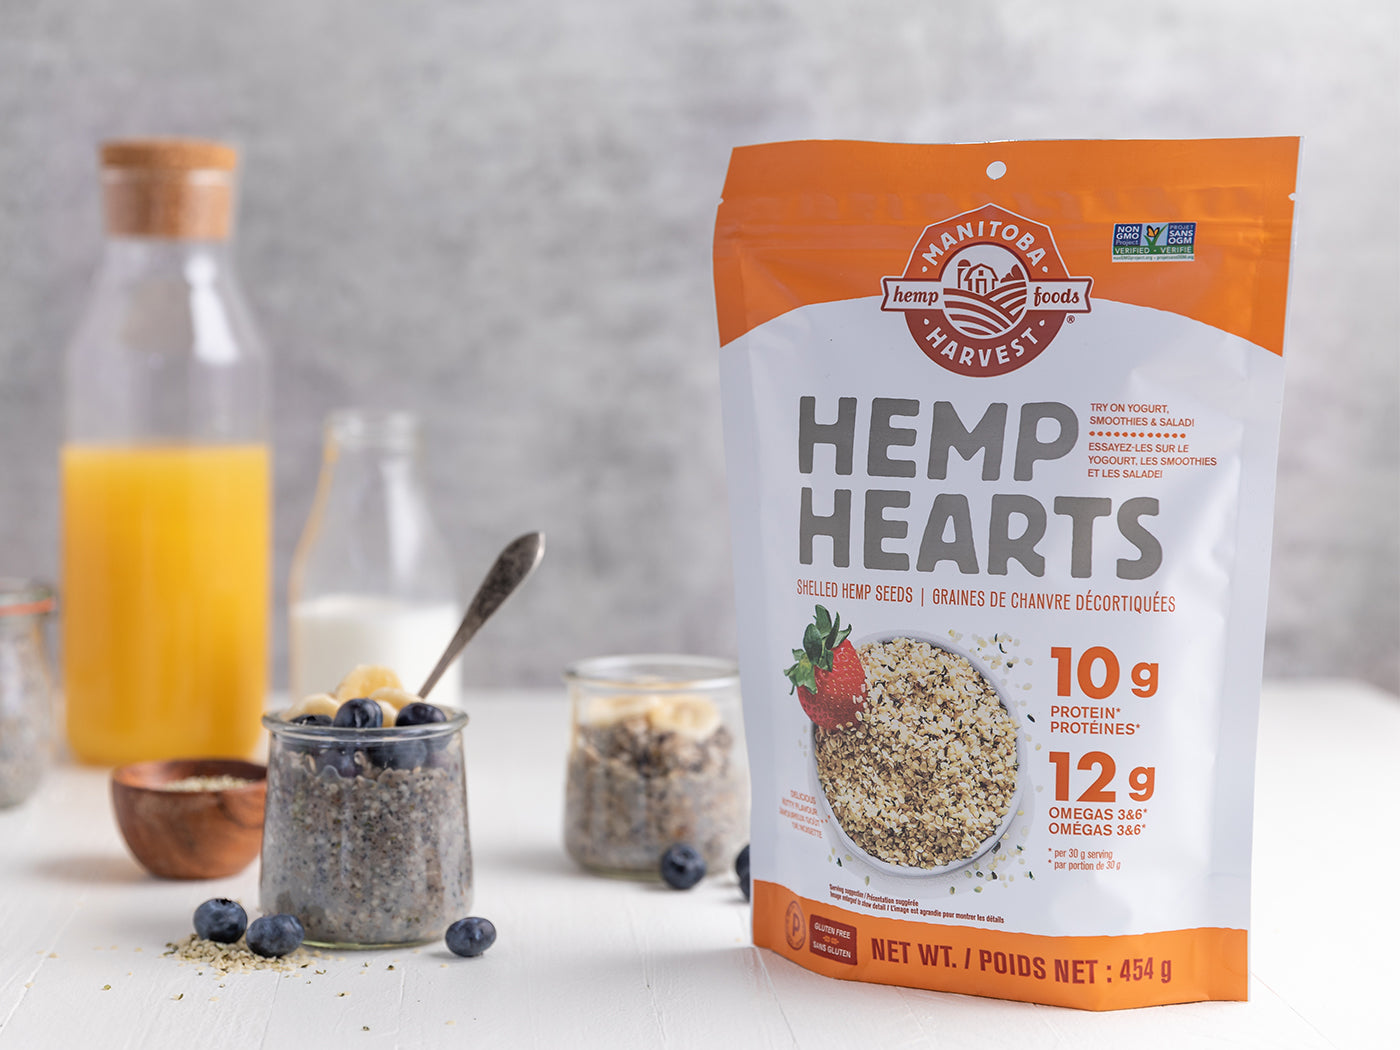 Explore Hemp Foods